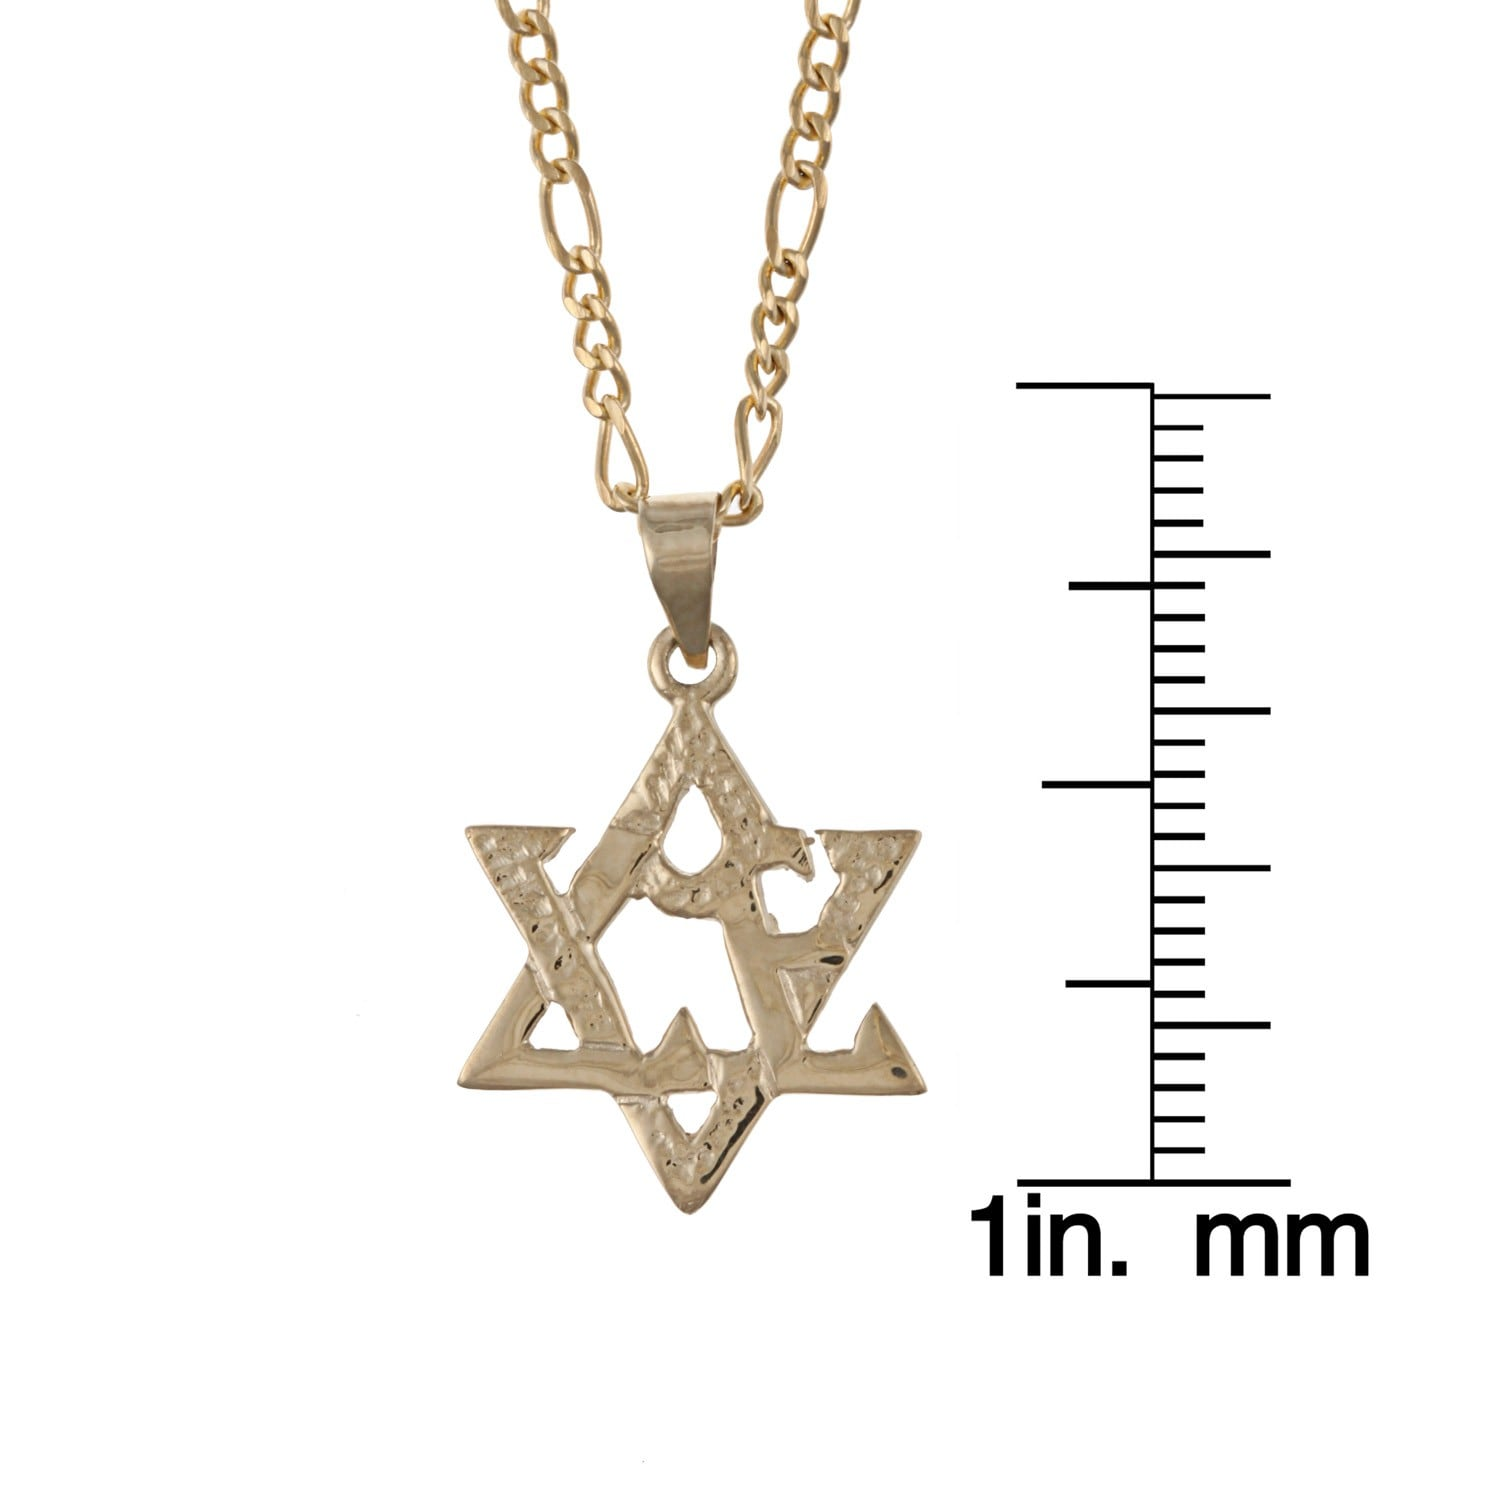 jewelry wd collections magen pendant necklace bracelets necklaces star diamonds gold of david rings pjg